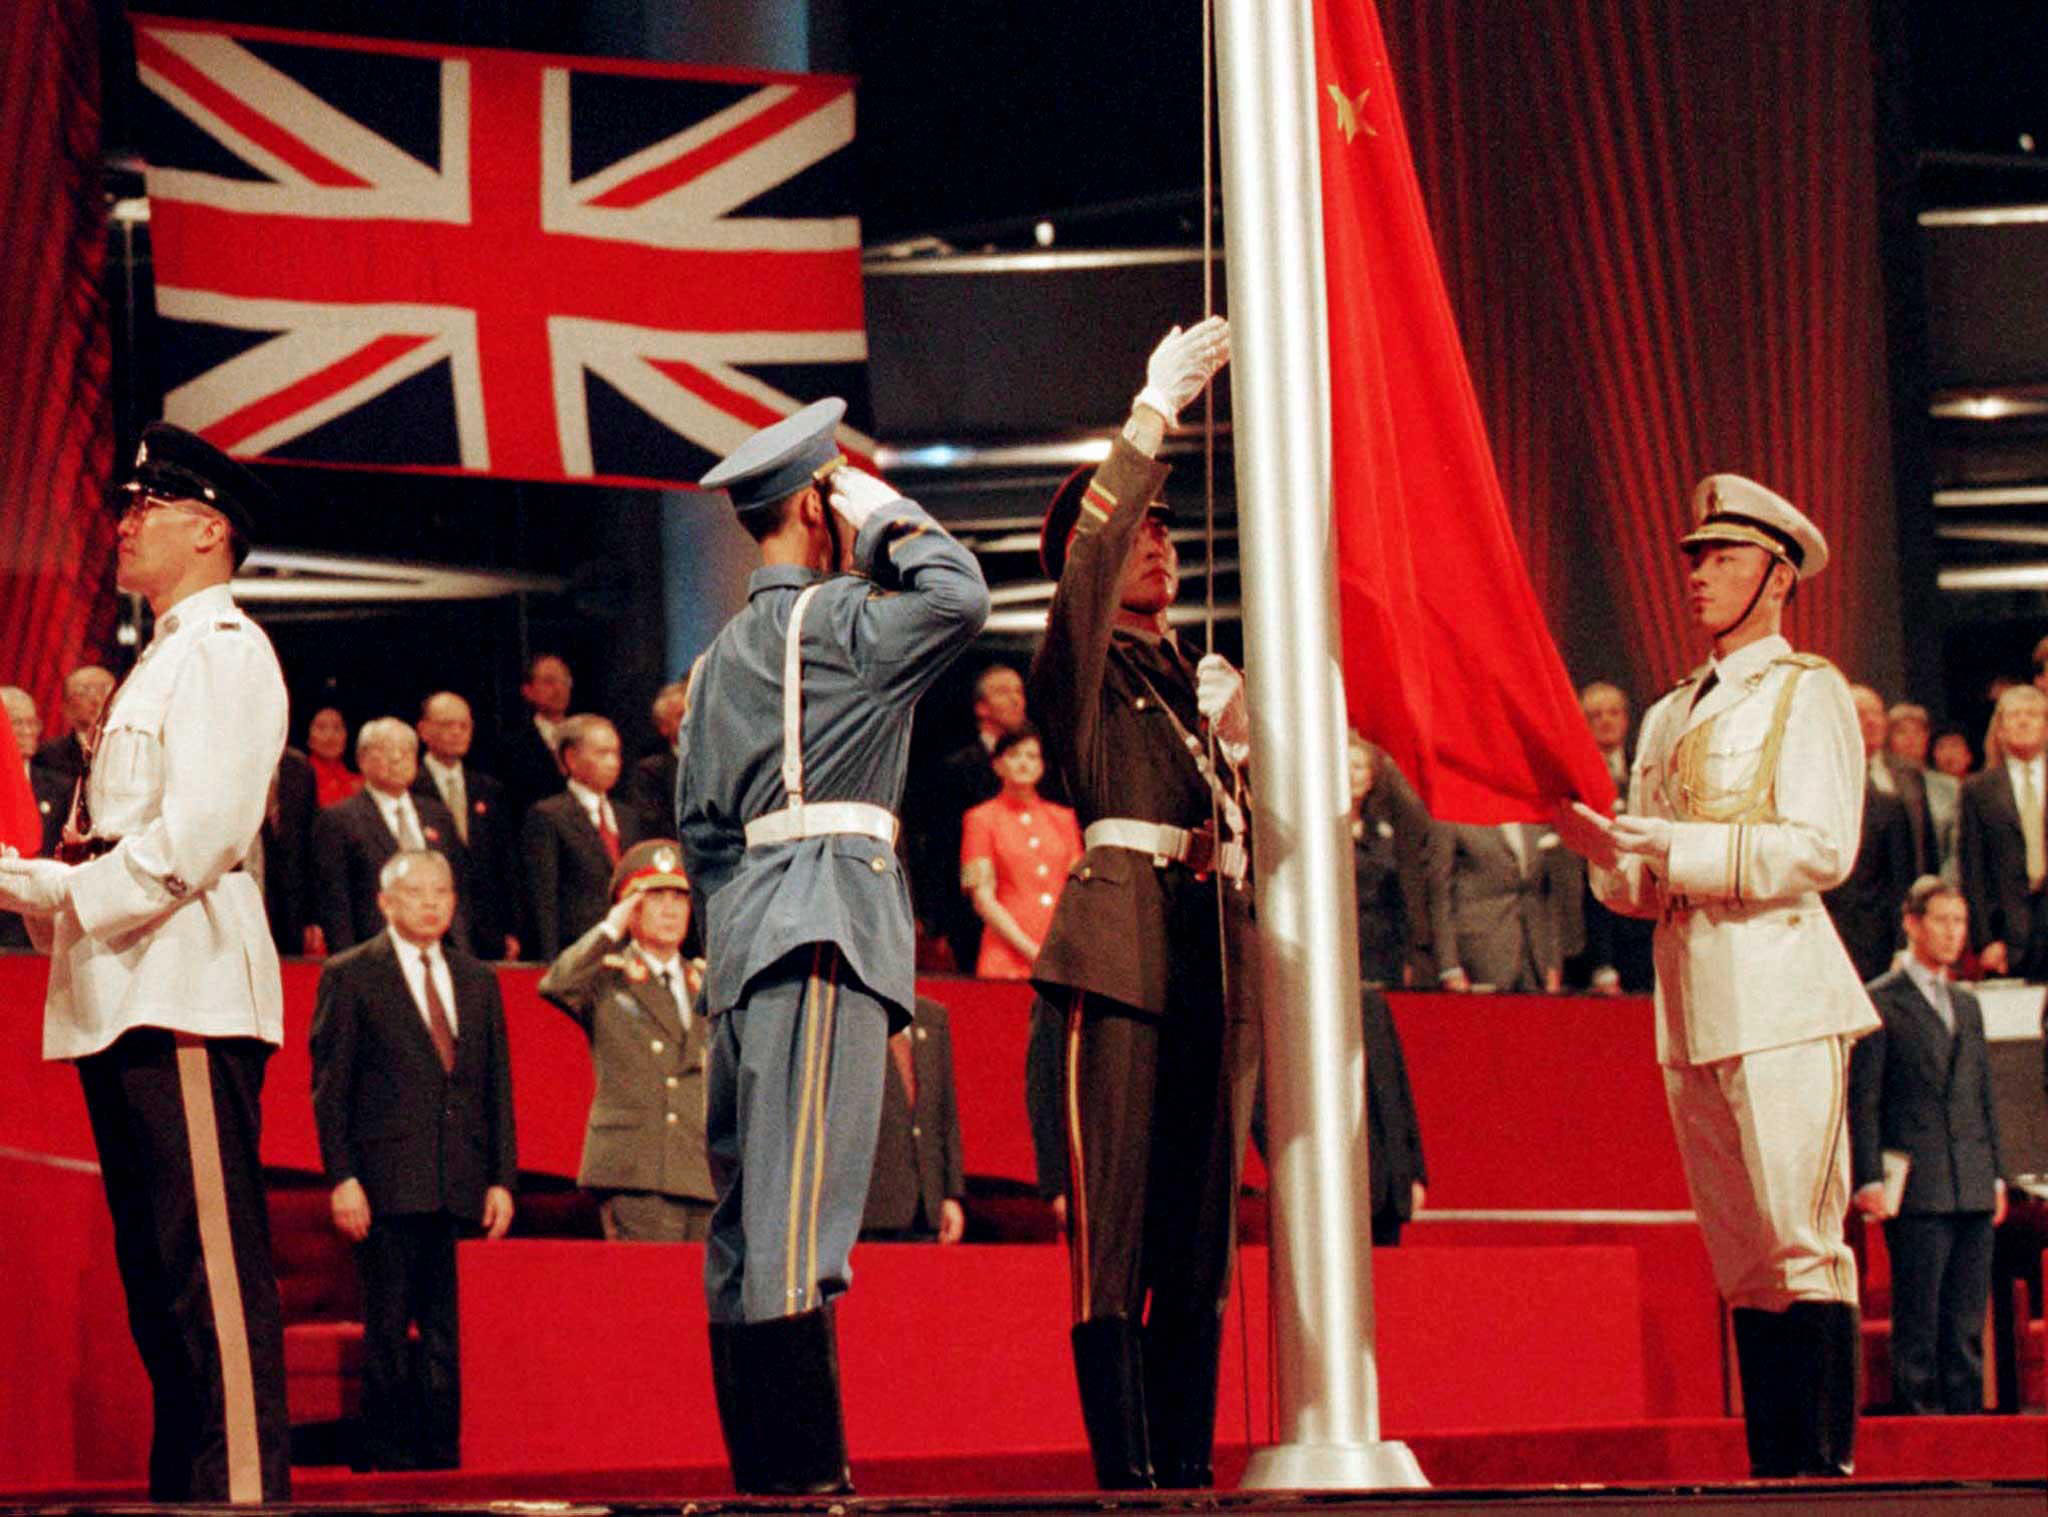 The Chinese flag is raised by People's Liberation Army soldiers at the handover ceremony in Hong Kong in this July 1, 1997 file photograph. Hong Kong returned to Chinese sovereignty at midnight after 156 years of British colonial rule 17 years ago today. REUTERS/Files (CHINA - Tags: ANNIVERSARY POLITICS)